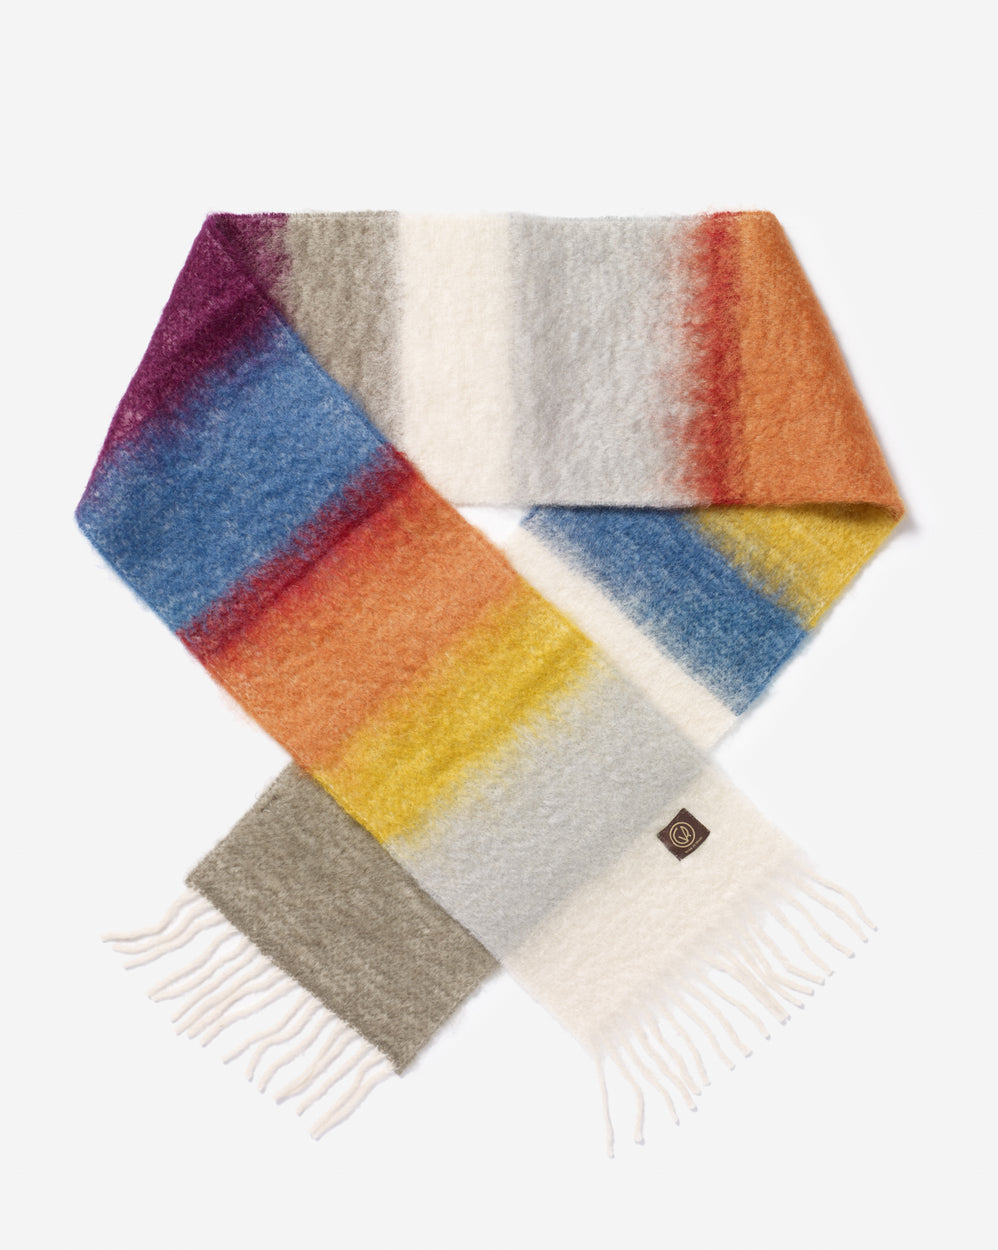 Exquisite Mohair & Wool Scarf